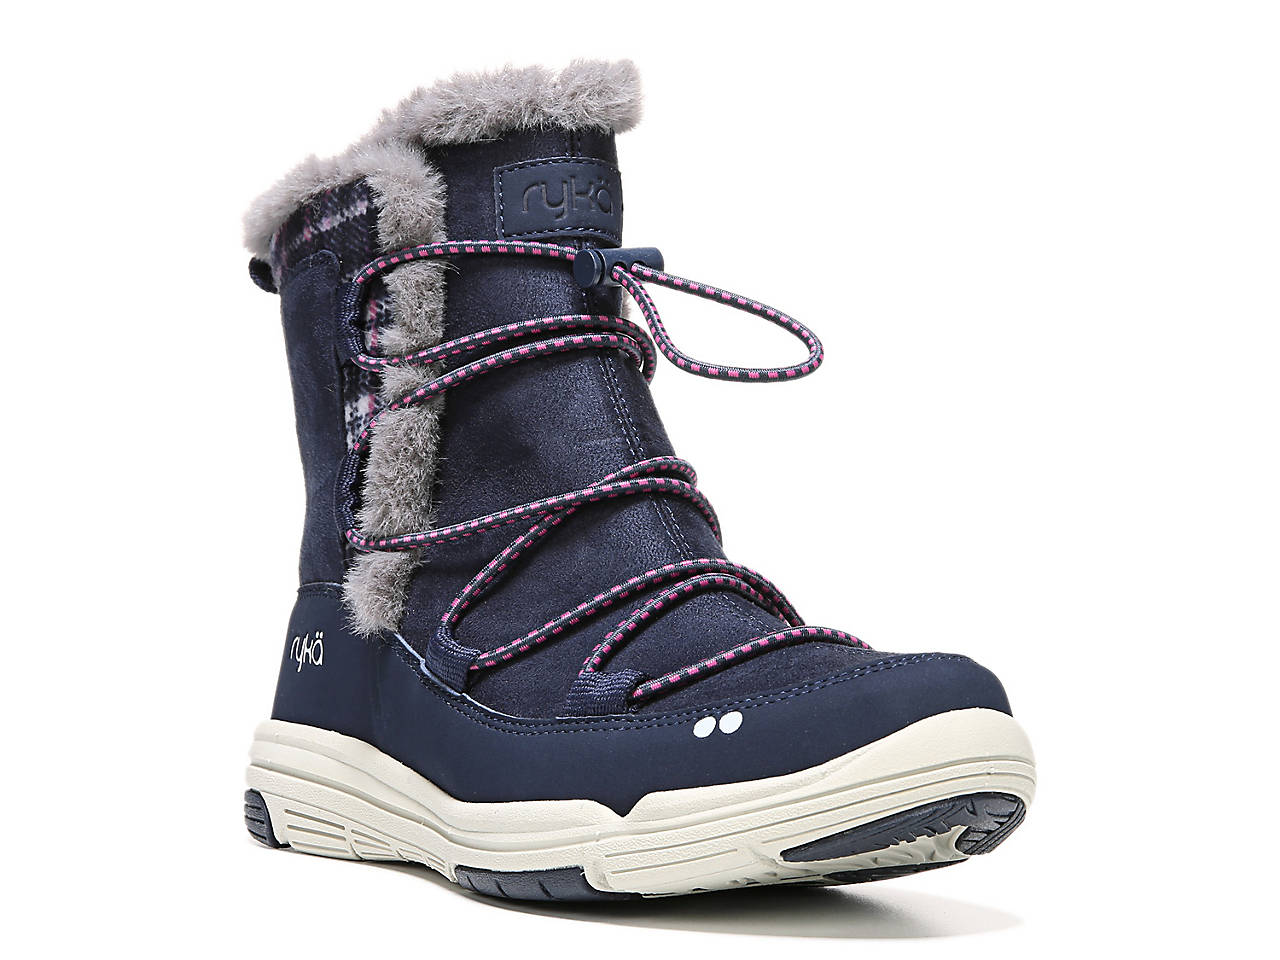 Ryka Aubonne Women's ... Water-Resistant Winter Boots cheap sale fast delivery sale sast RPb6Icx